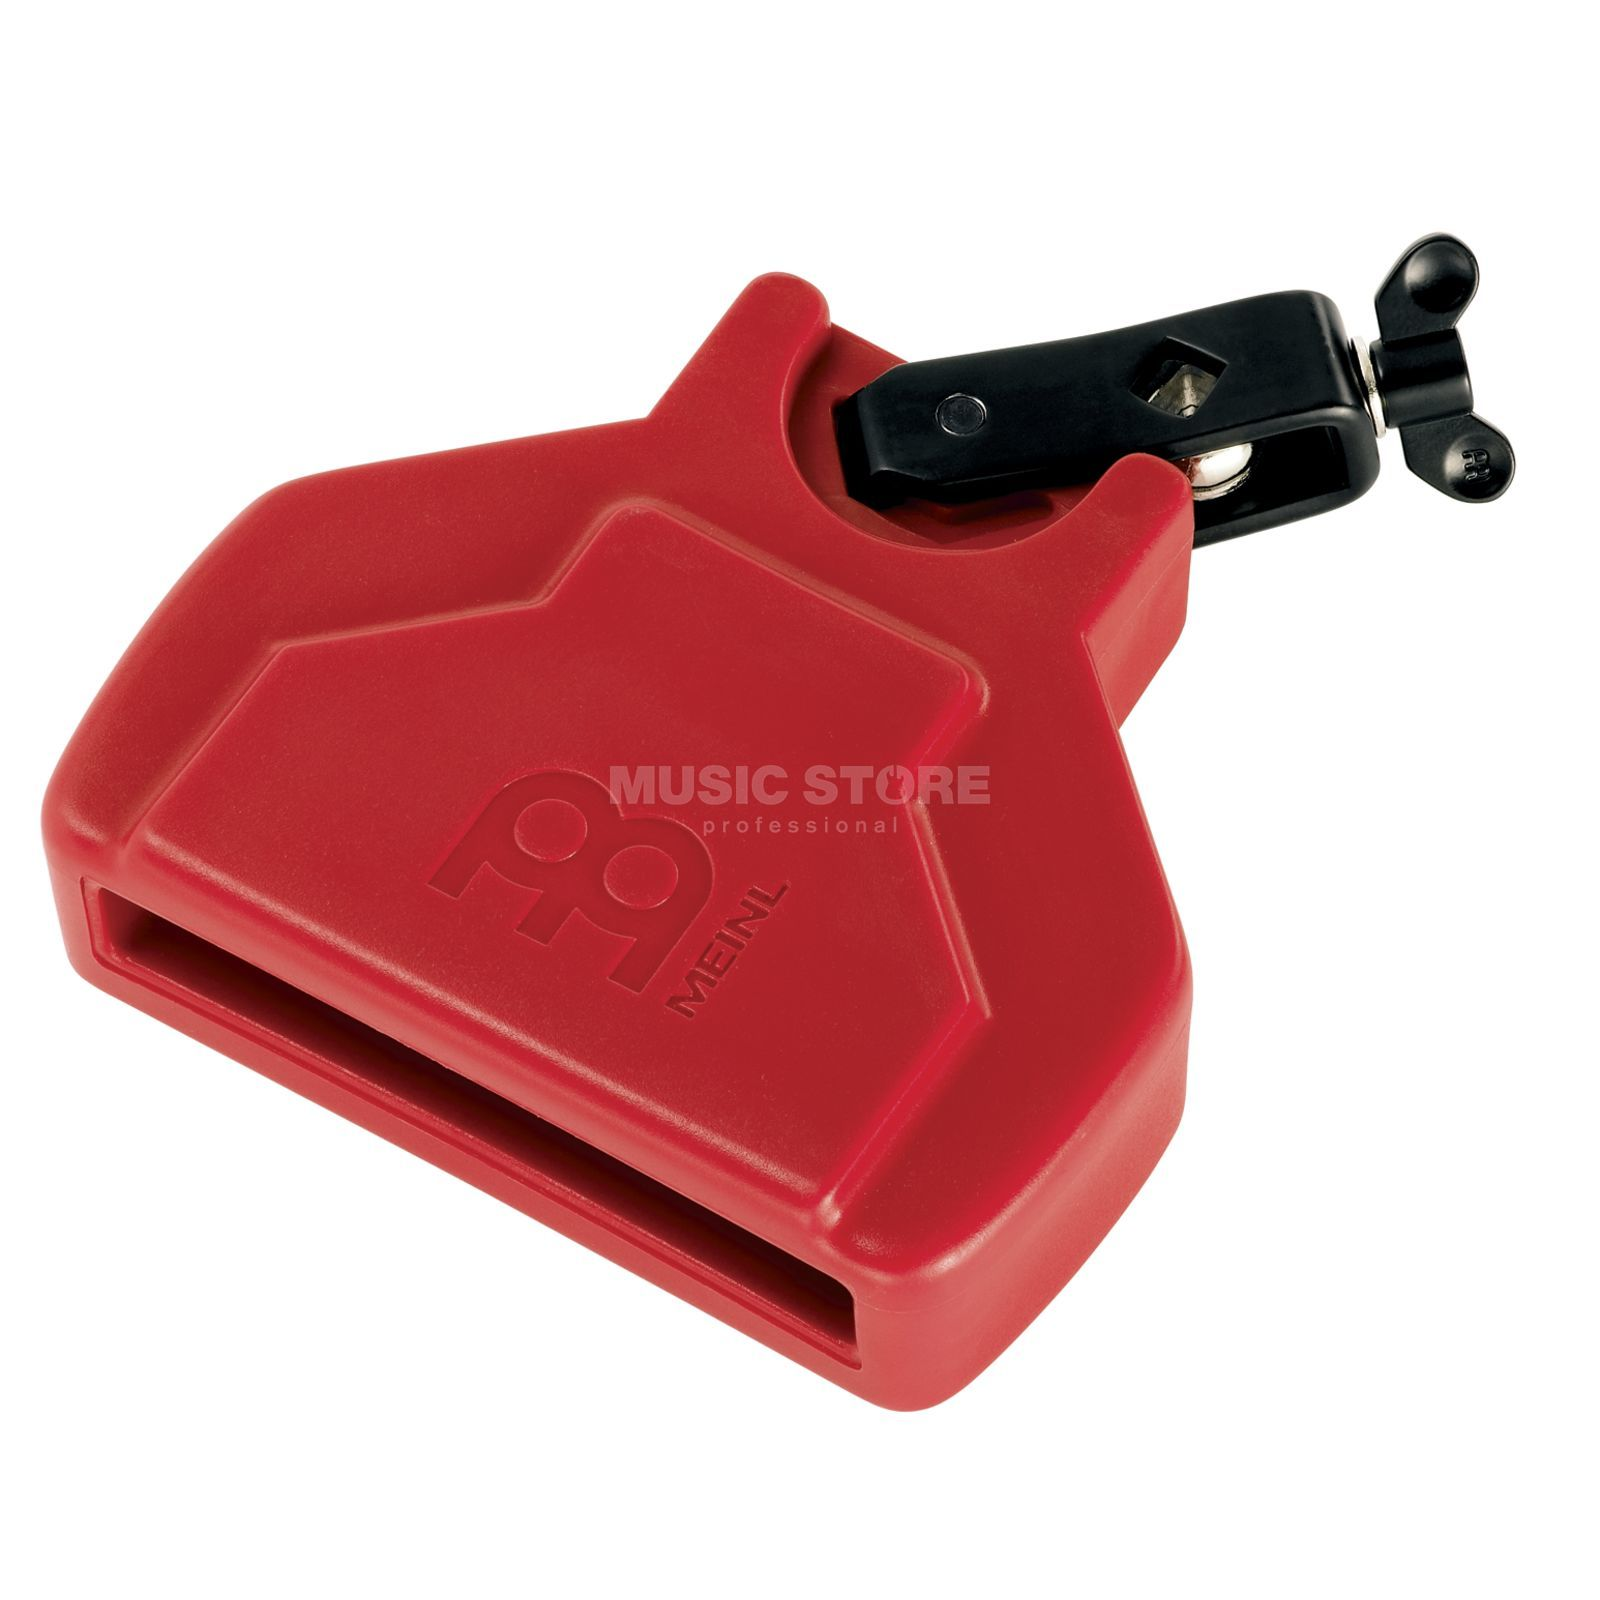 Meinl Percussion Block MPE2R, Low Pitch, Red Produktbild